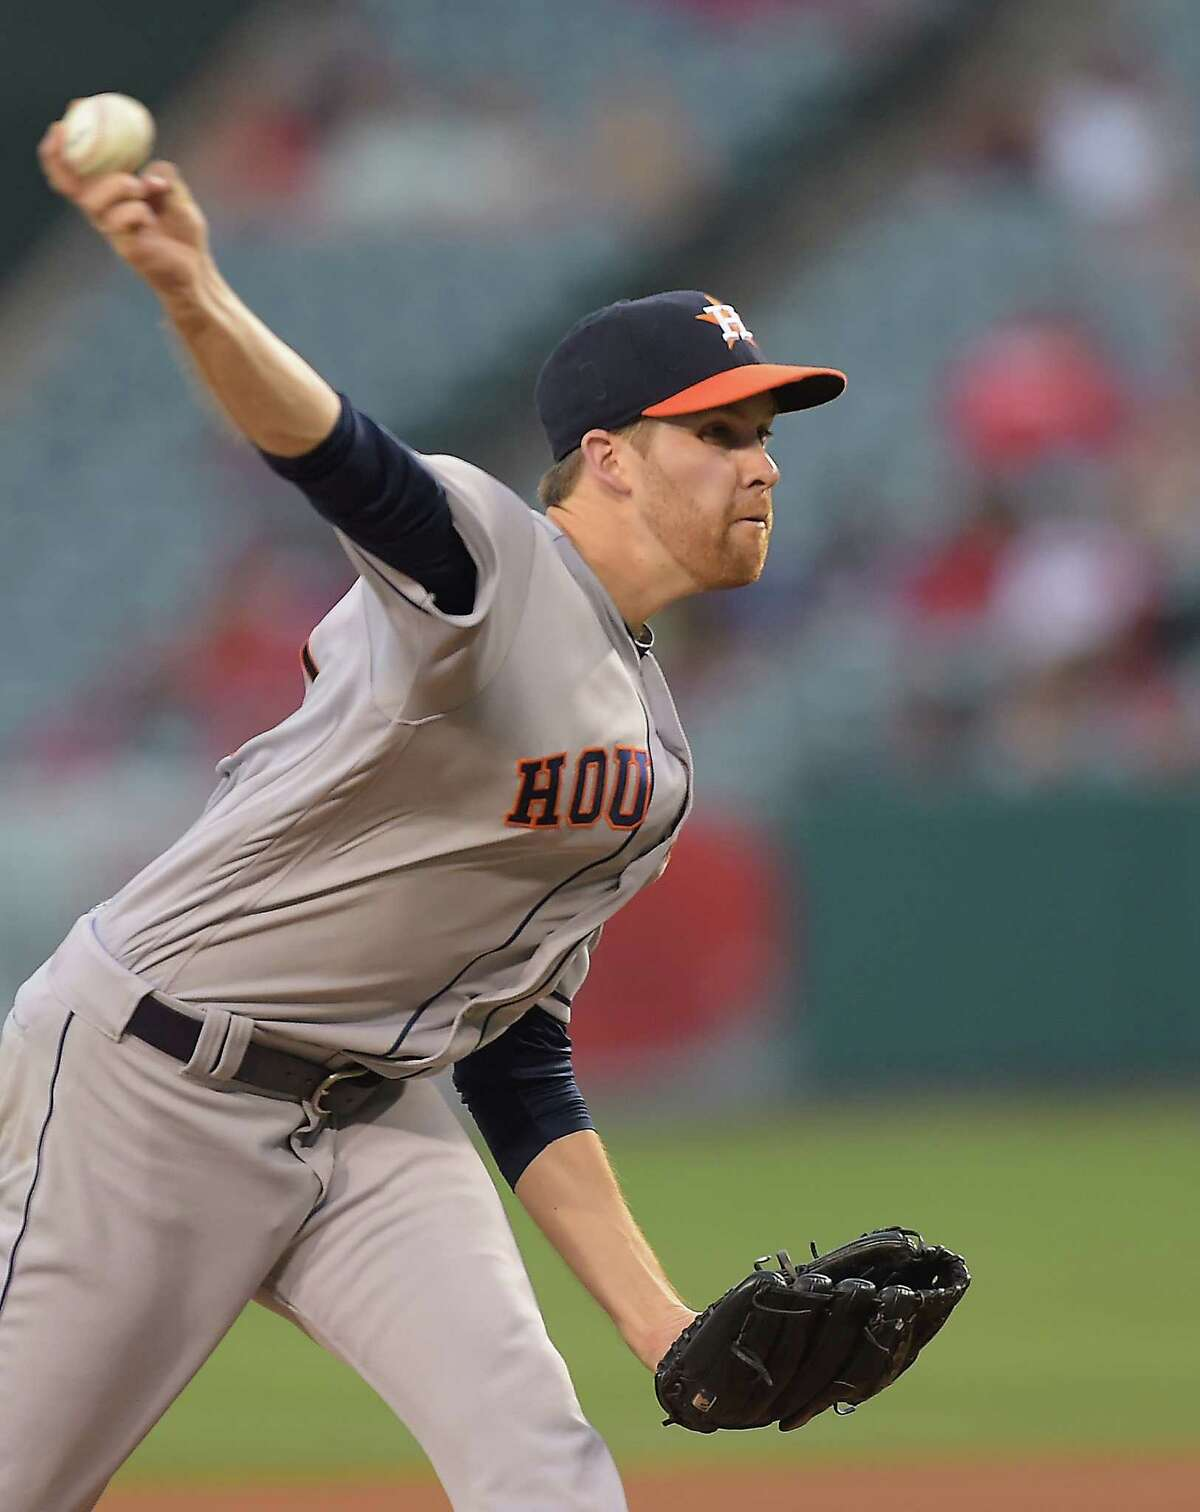 ANAHEIM, CA - JUNE 27: Collin McHugh #31 of the Houston Astros in the second inning of the game against the Los Angeles Angels at Angel Stadium of Anaheim on June 27, 2016 in Anaheim, California.